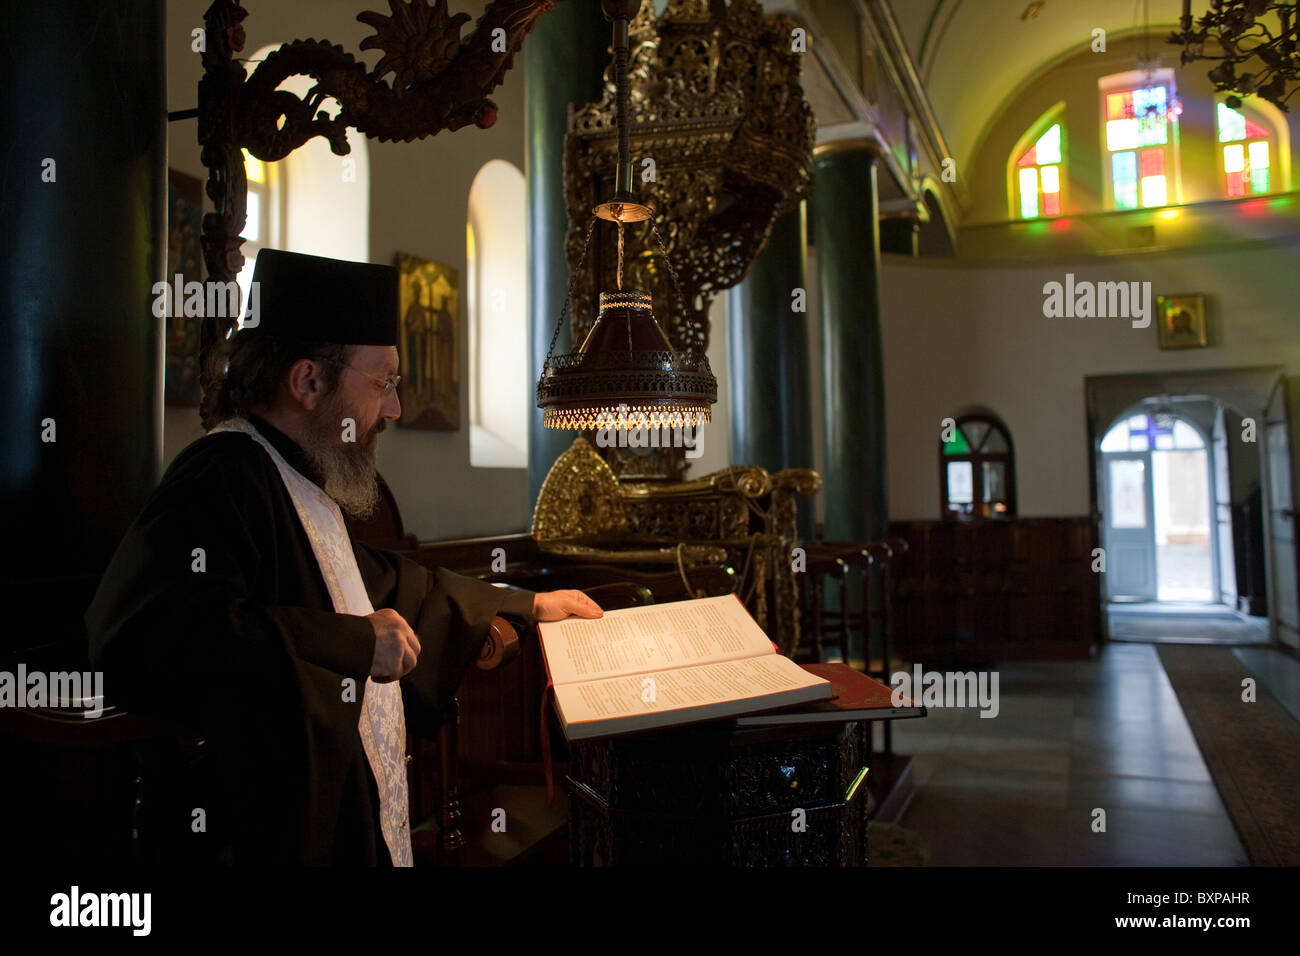 Greek Orthodox priest during the evening service, Heybeliada, Turkey - Stock Image